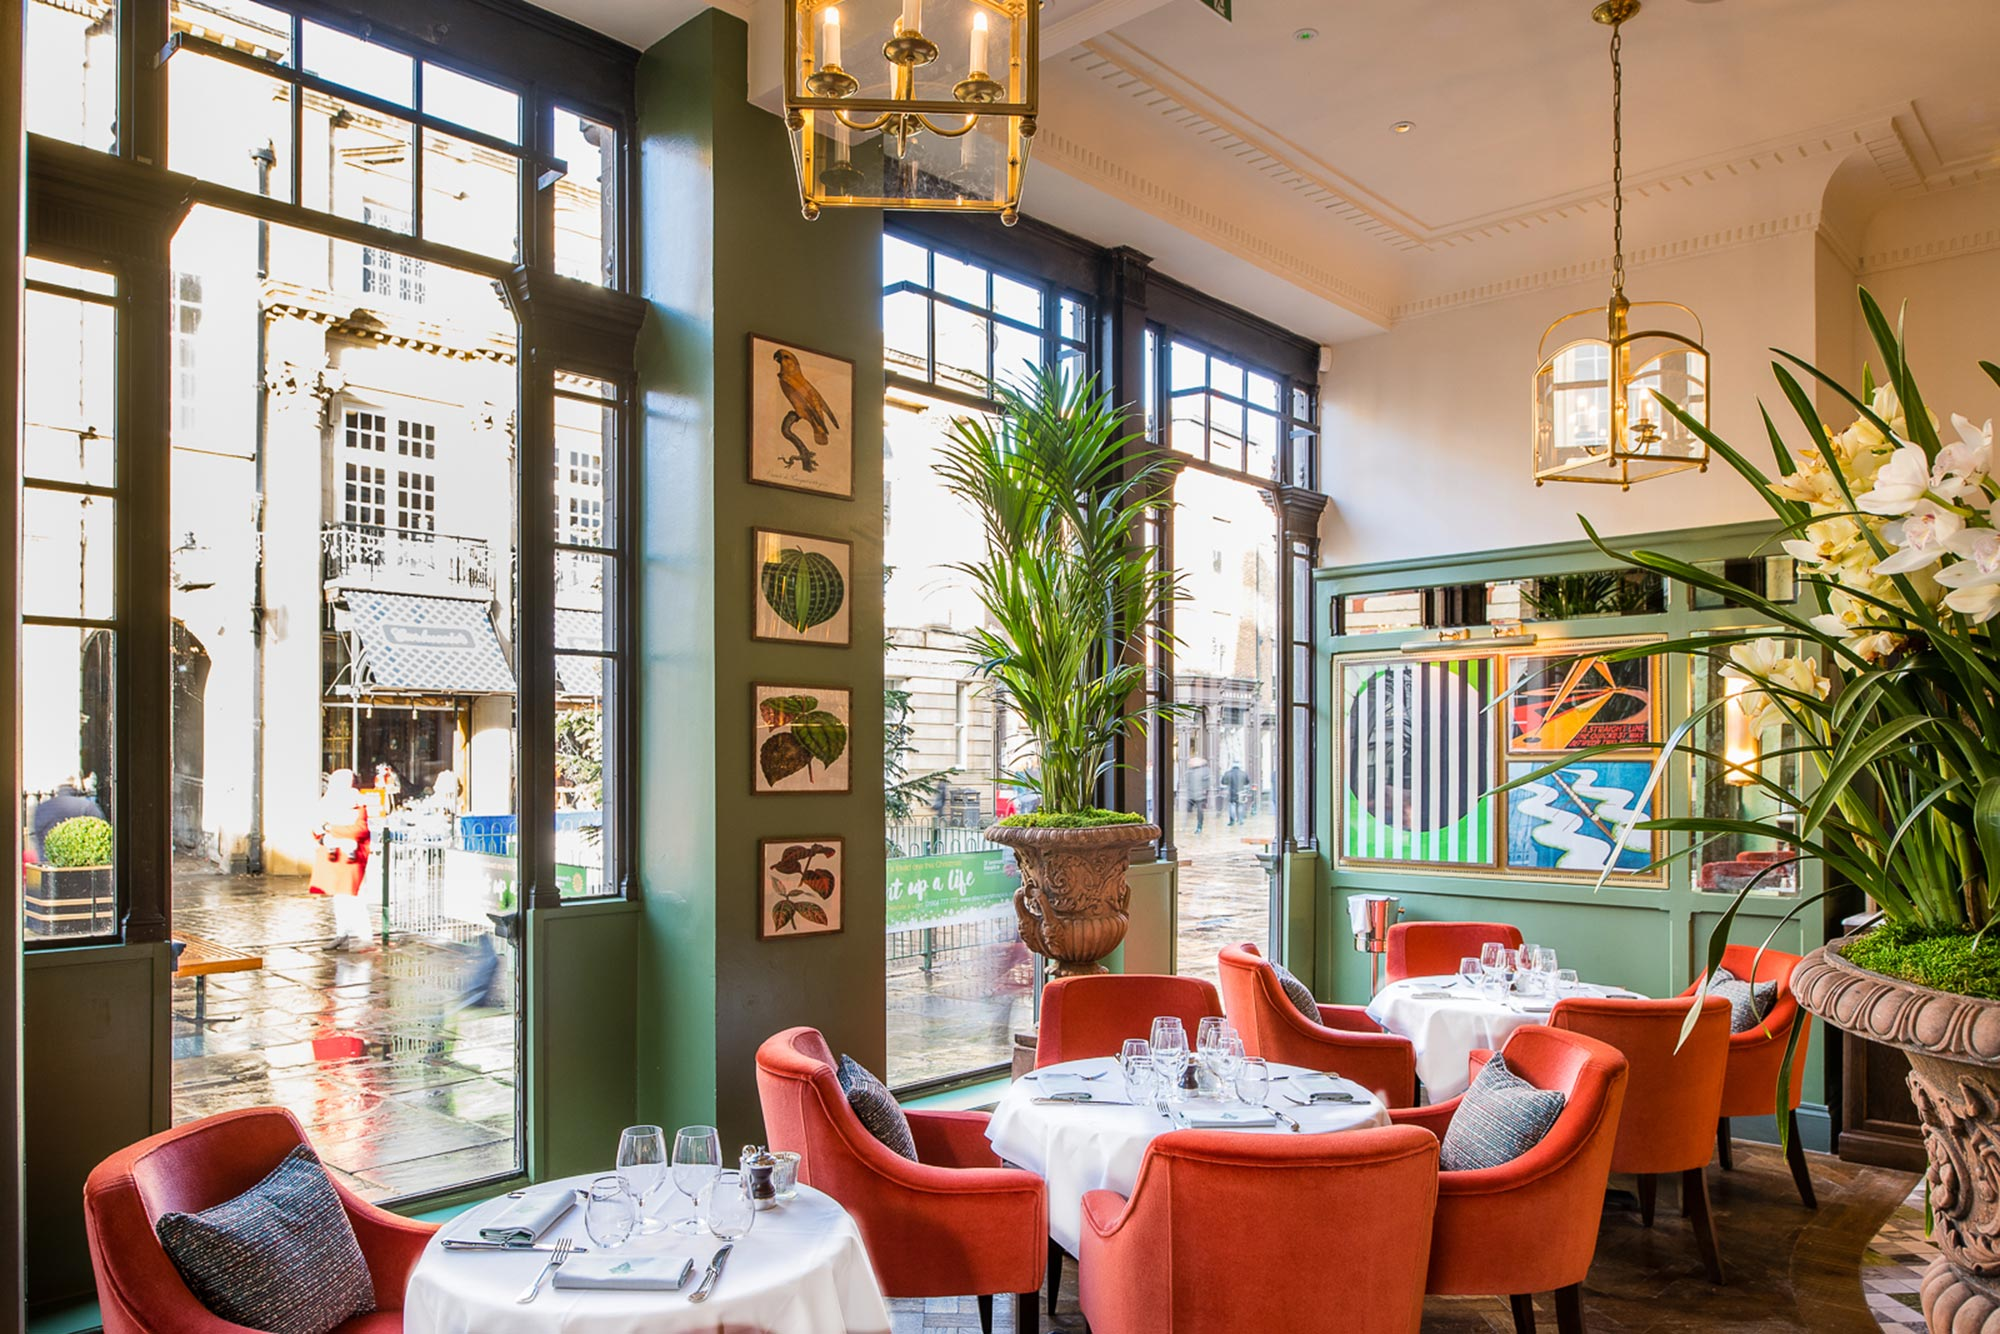 Places to eat in York, The Ivy St. Helen's Square Restaurant - The Ivy York